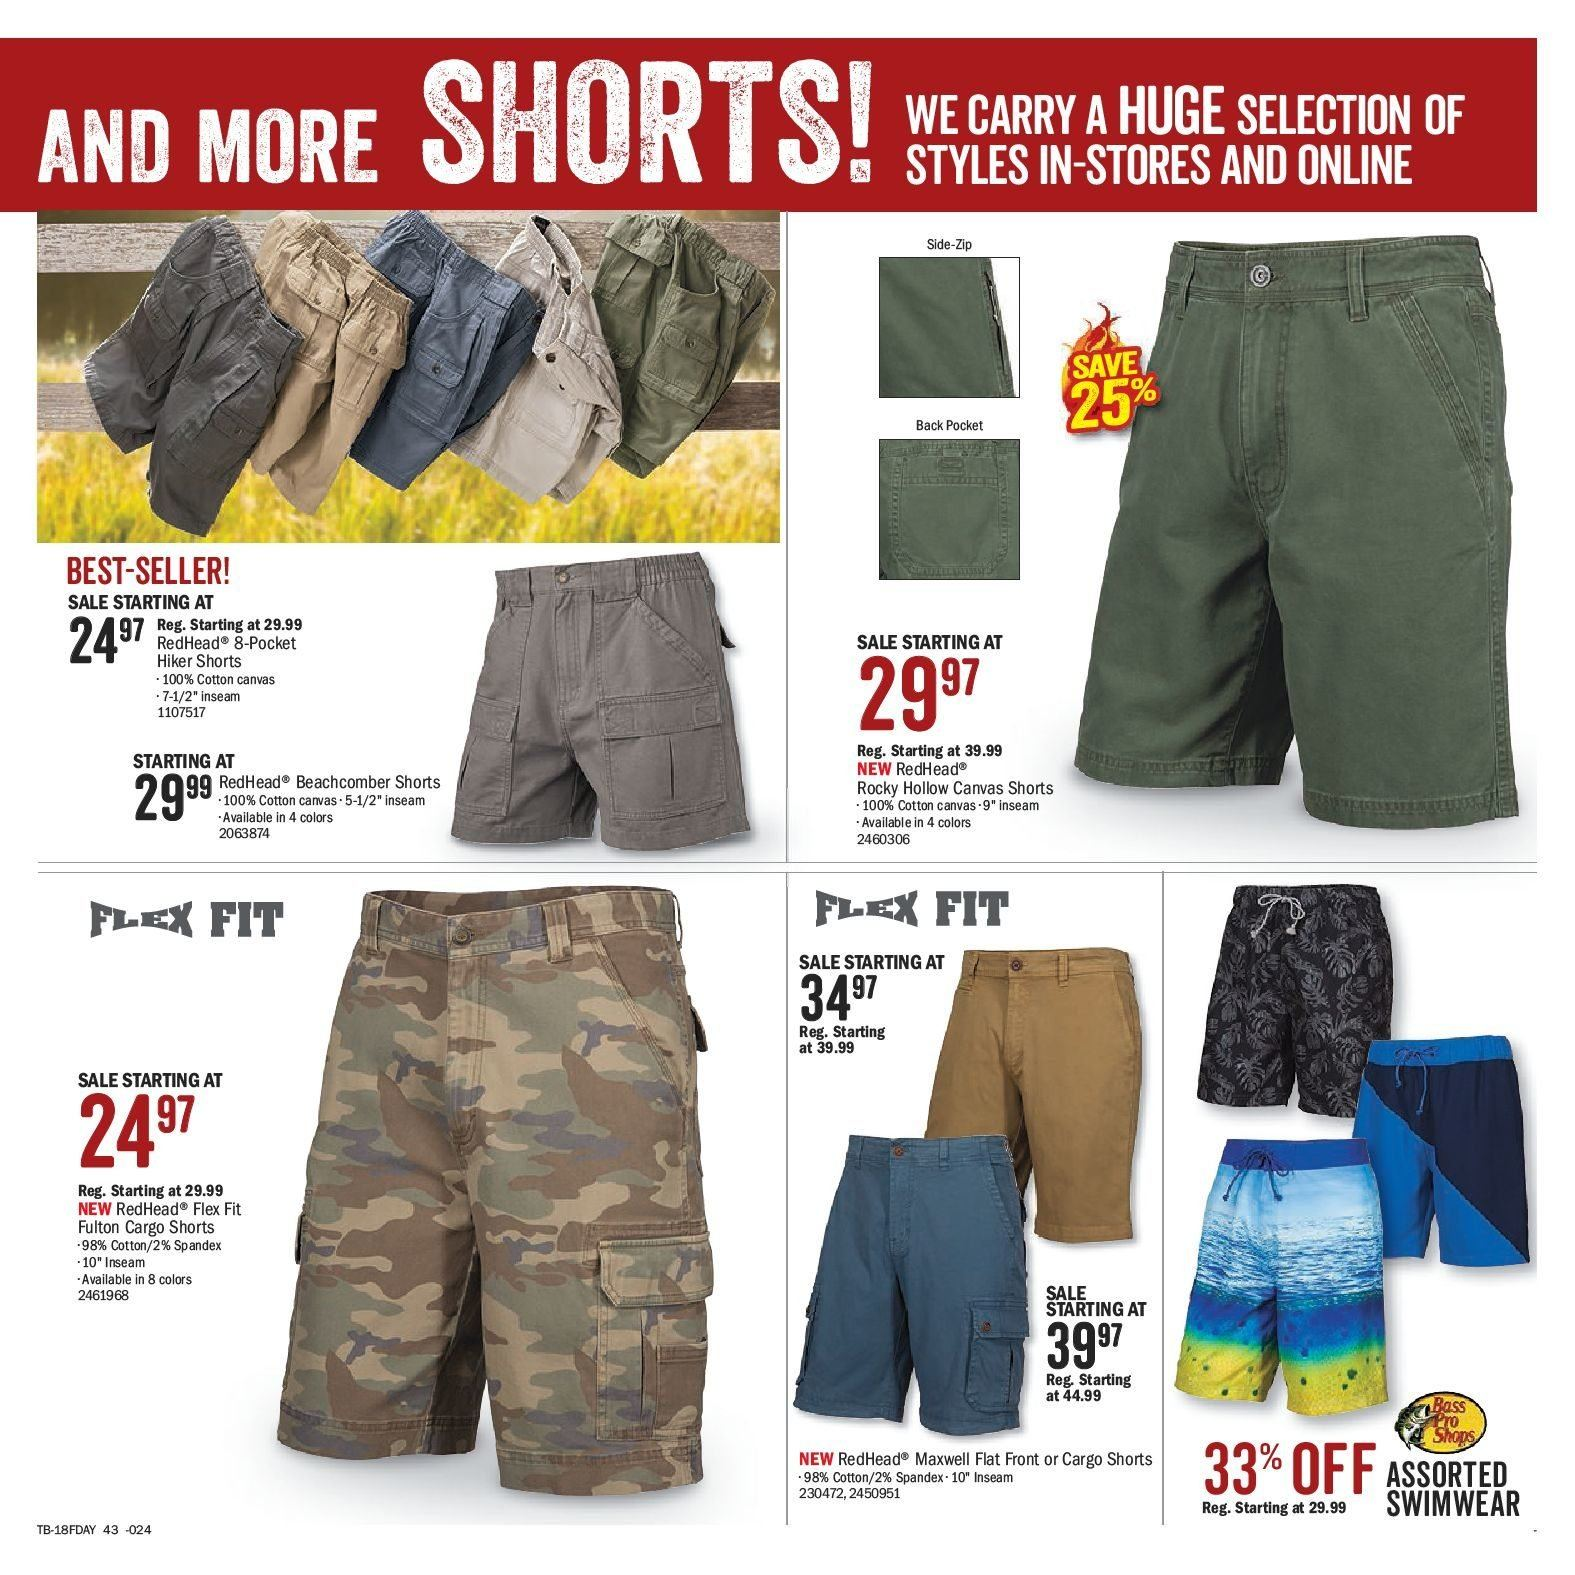 Bass Pro Shops Flyer  - May 29, 2018 - June 17, 2018. Page 47.